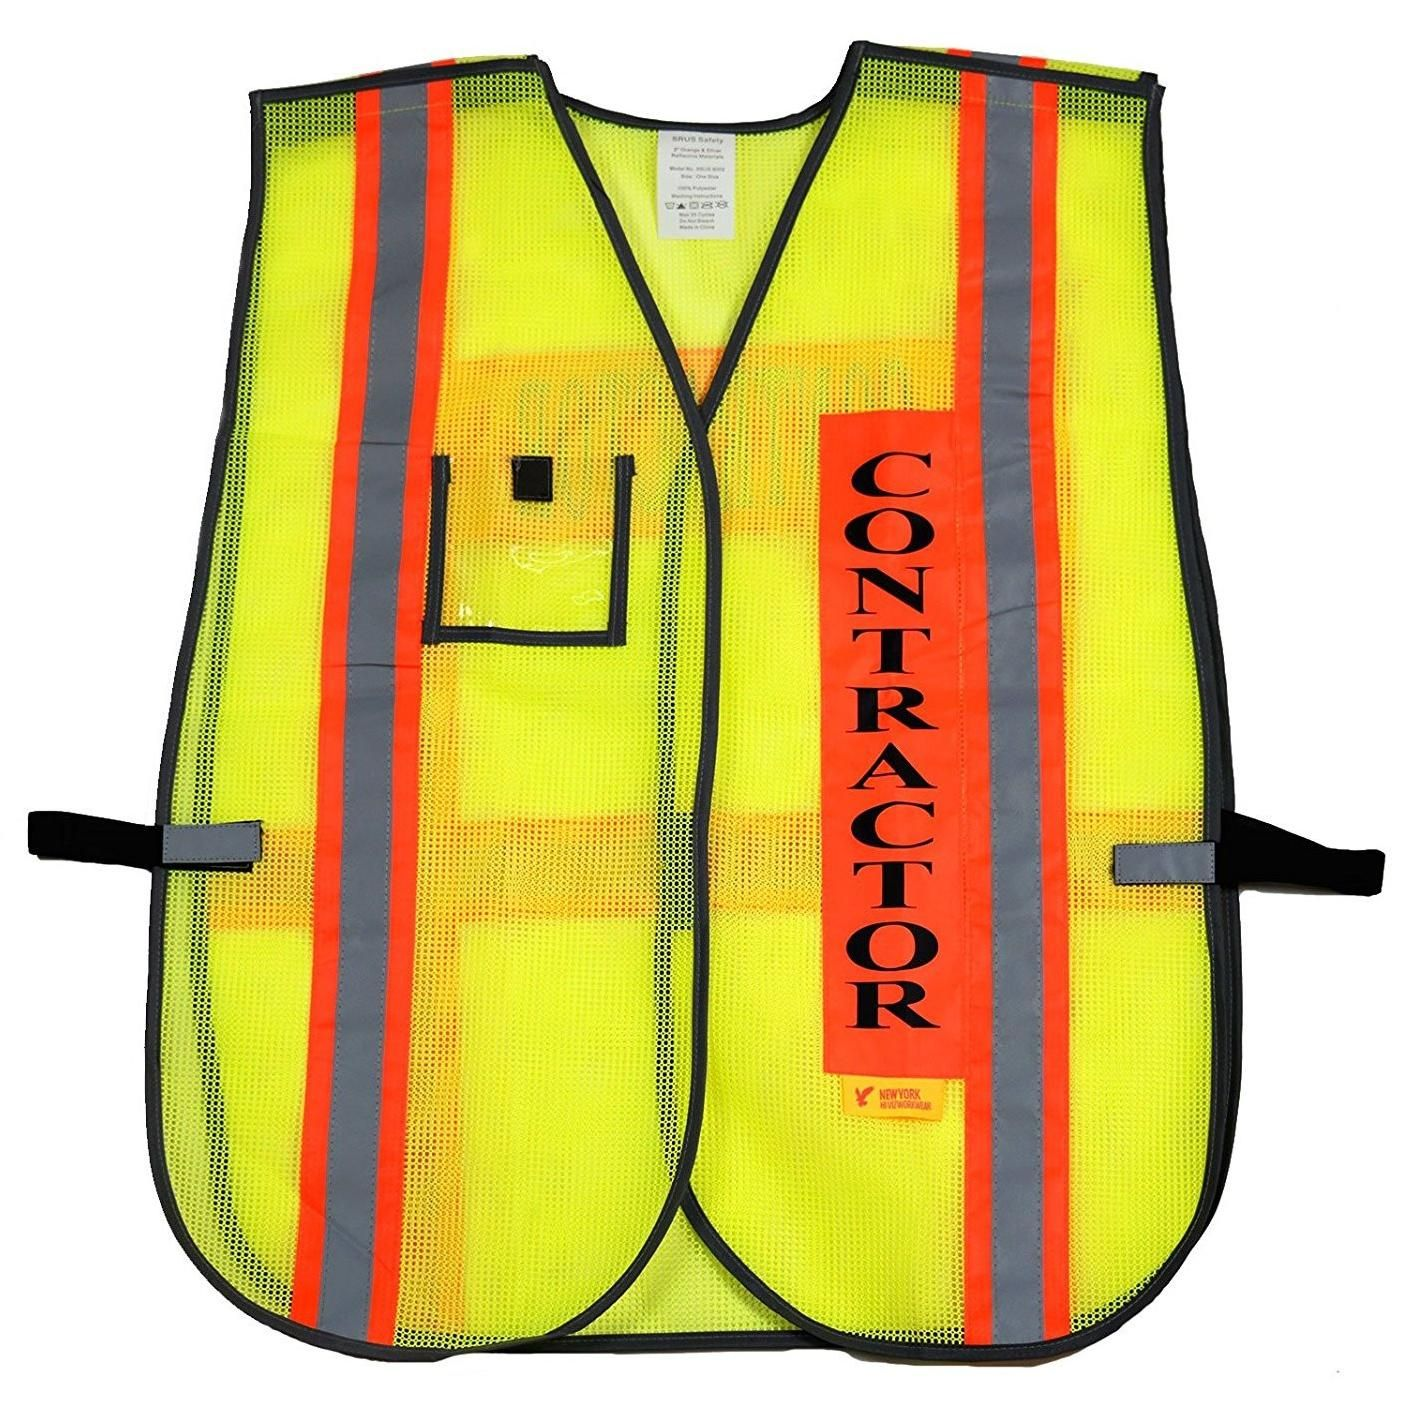 Contractor Safety Vest with Reflective Stripes 8001